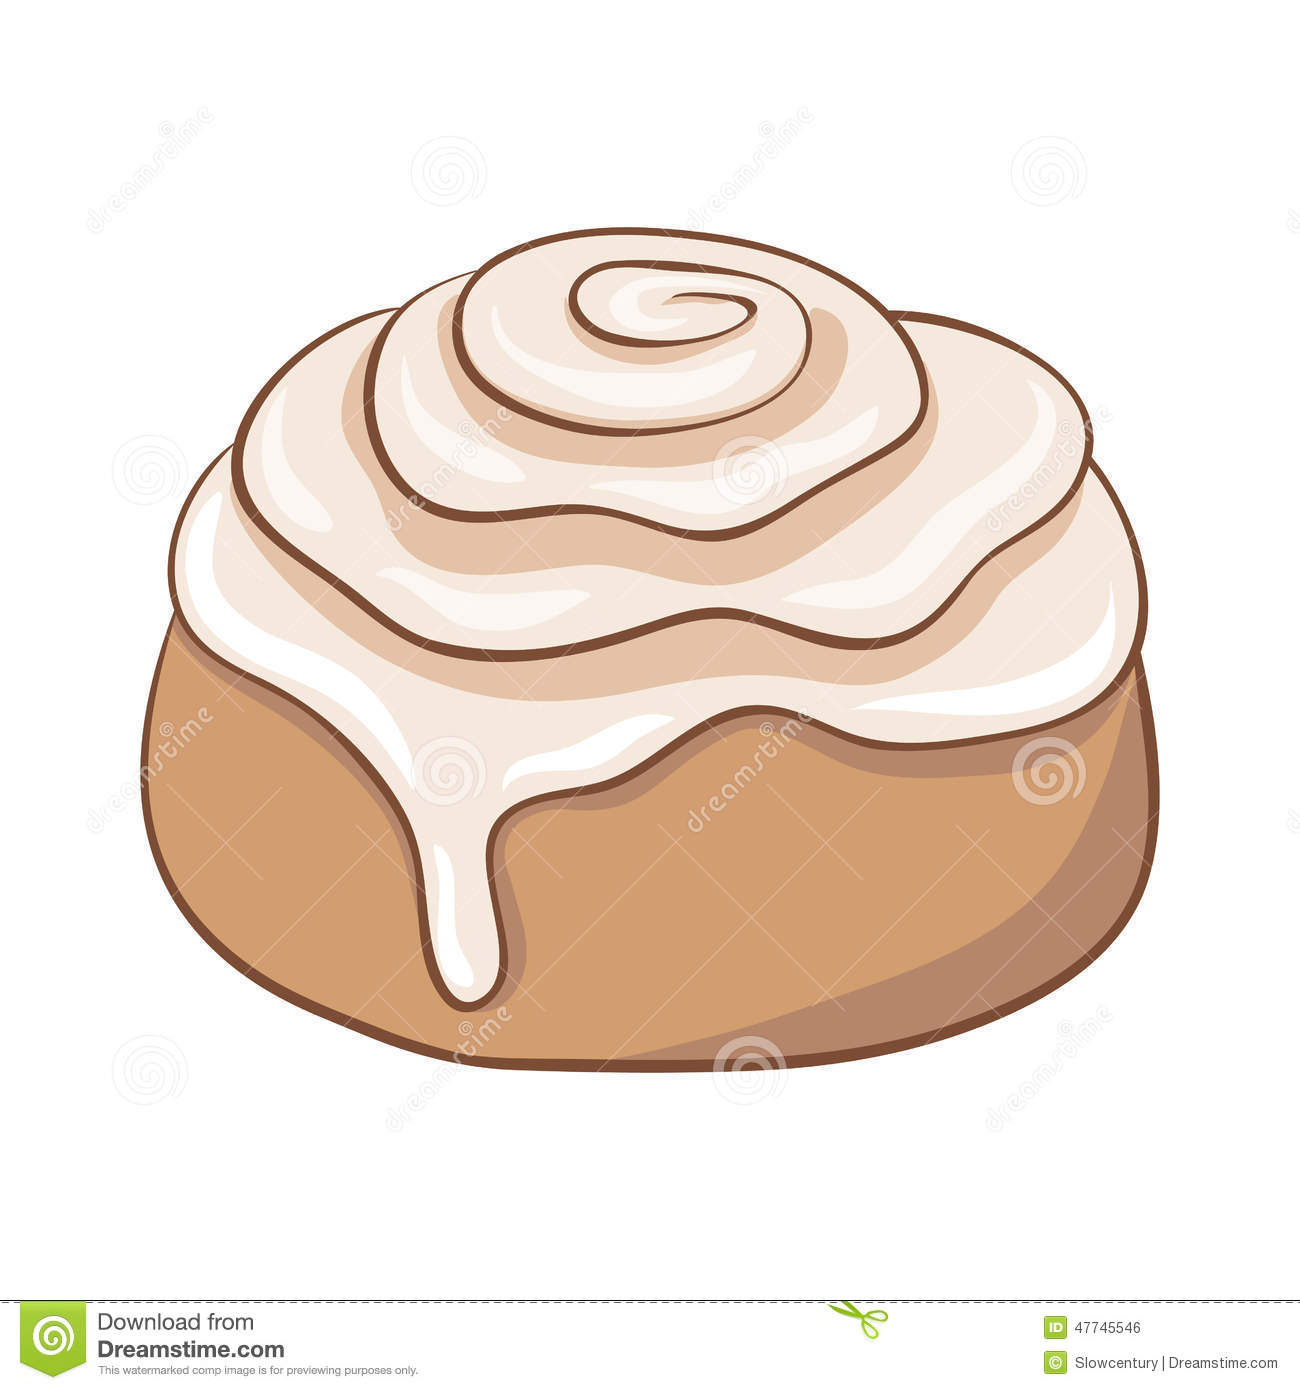 Cinnamon Roll Cartoon Clipart - Clipart Kid